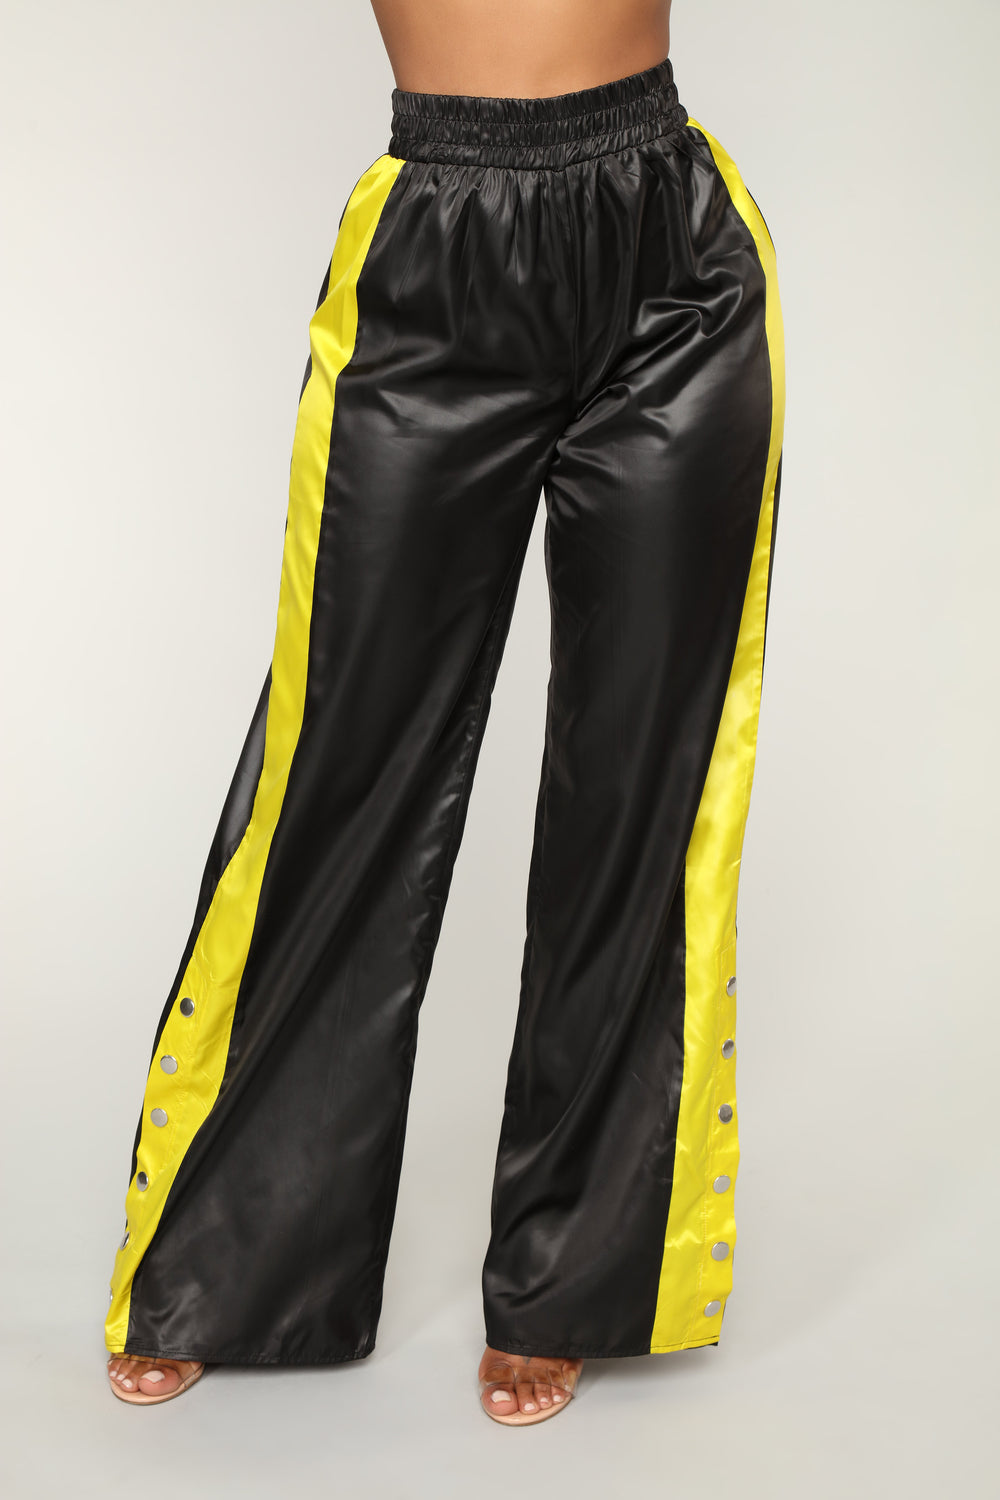 Best In The Game Snap Pants - Black/Yellow